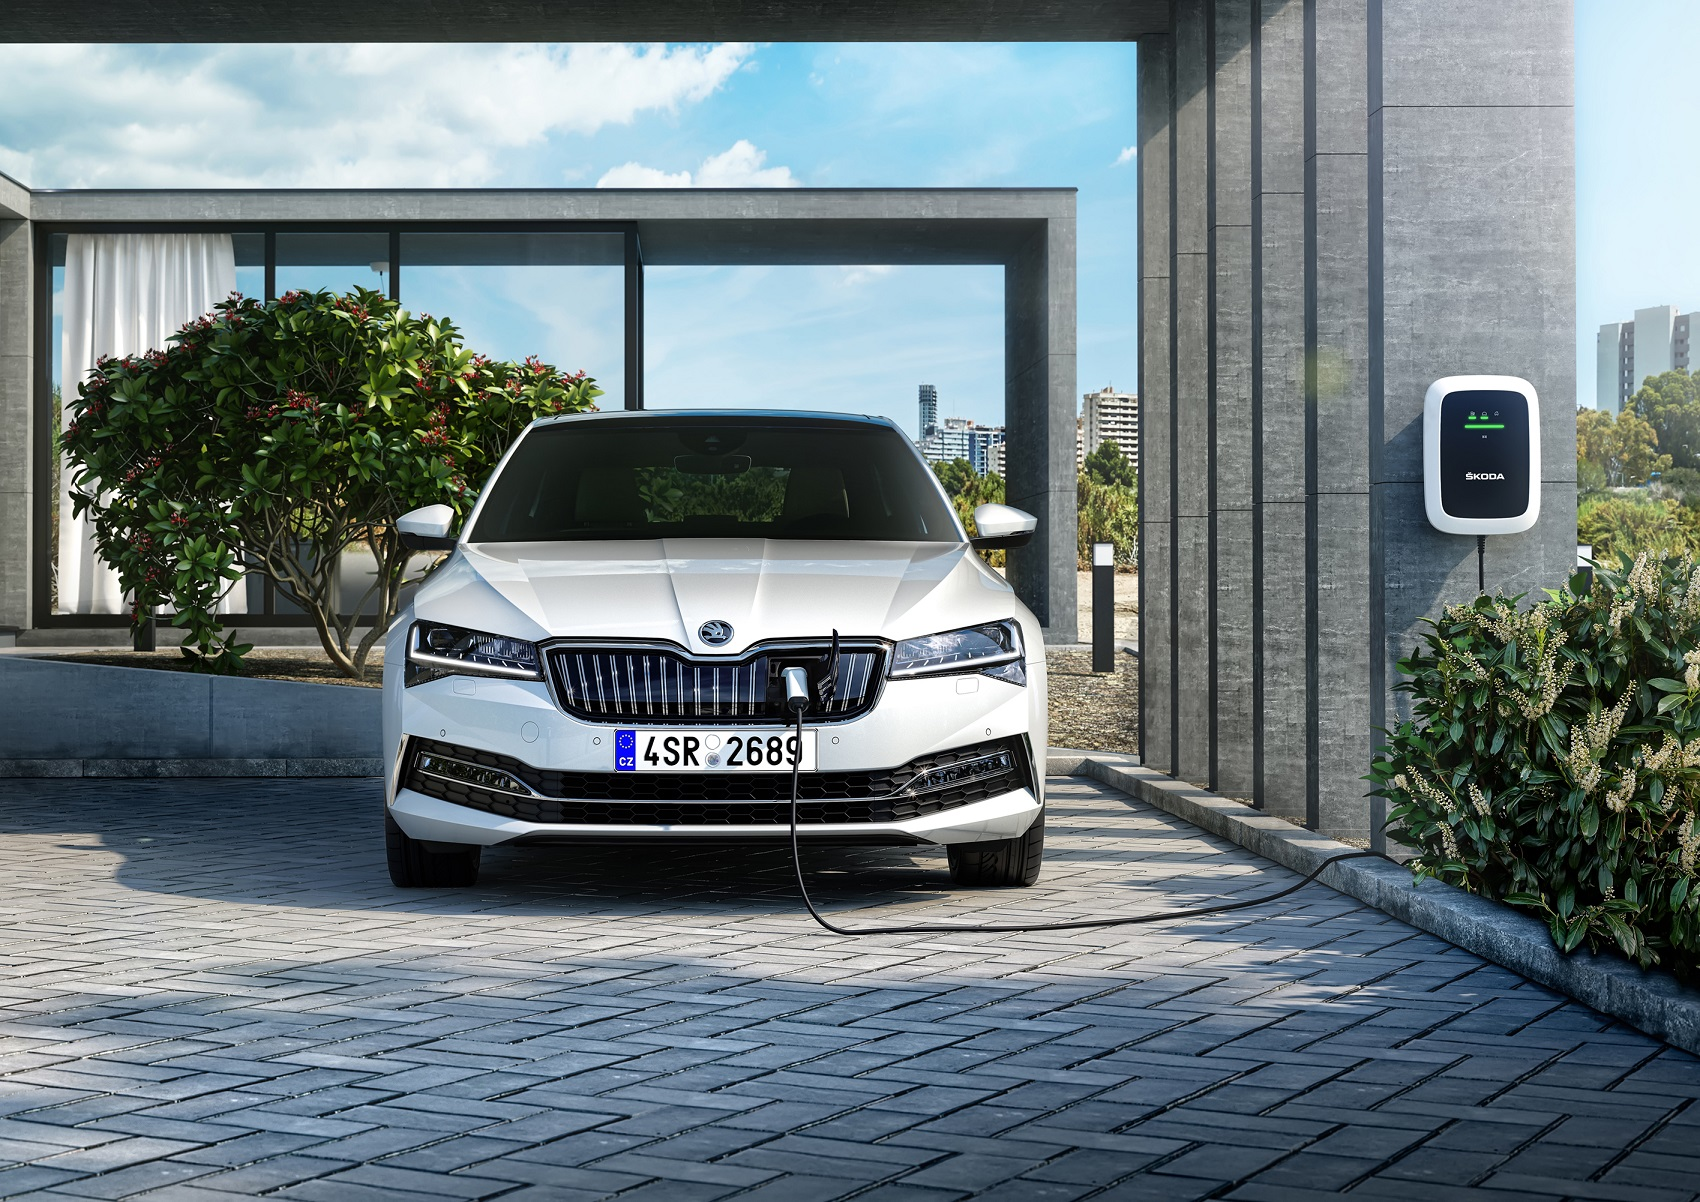 First plug-in hybrid Skoda available in Ireland in 2020